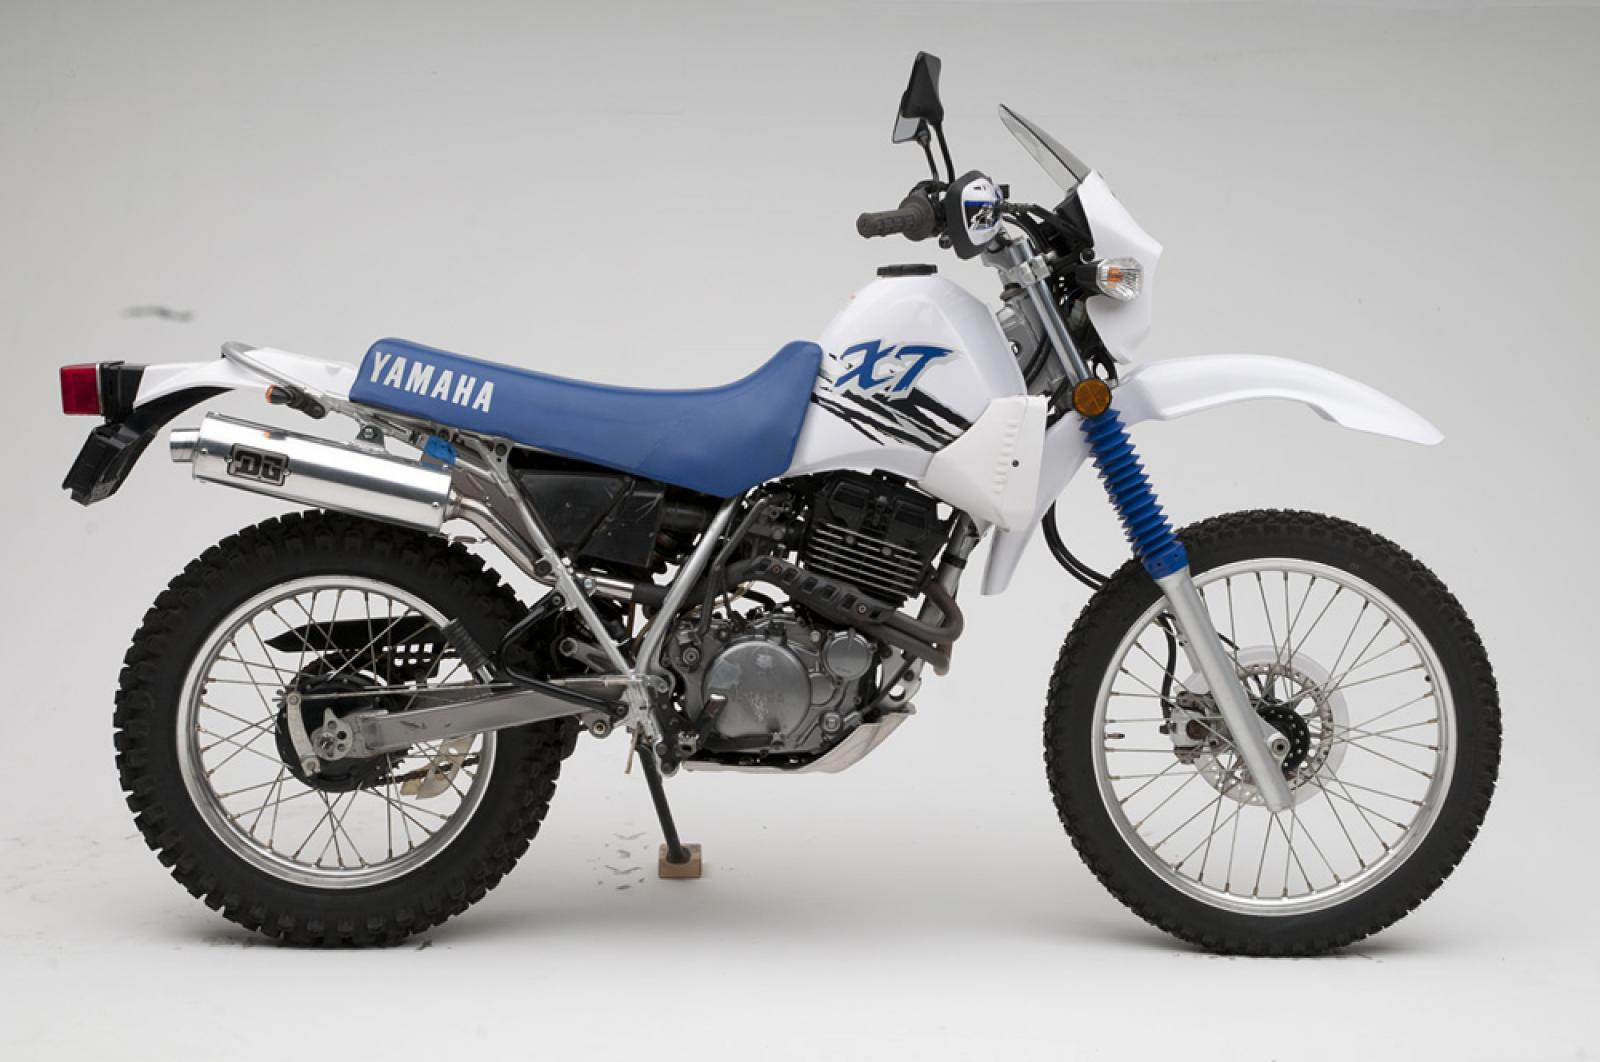 Yamaha Xt on Yamaha Xt 500 Enduro